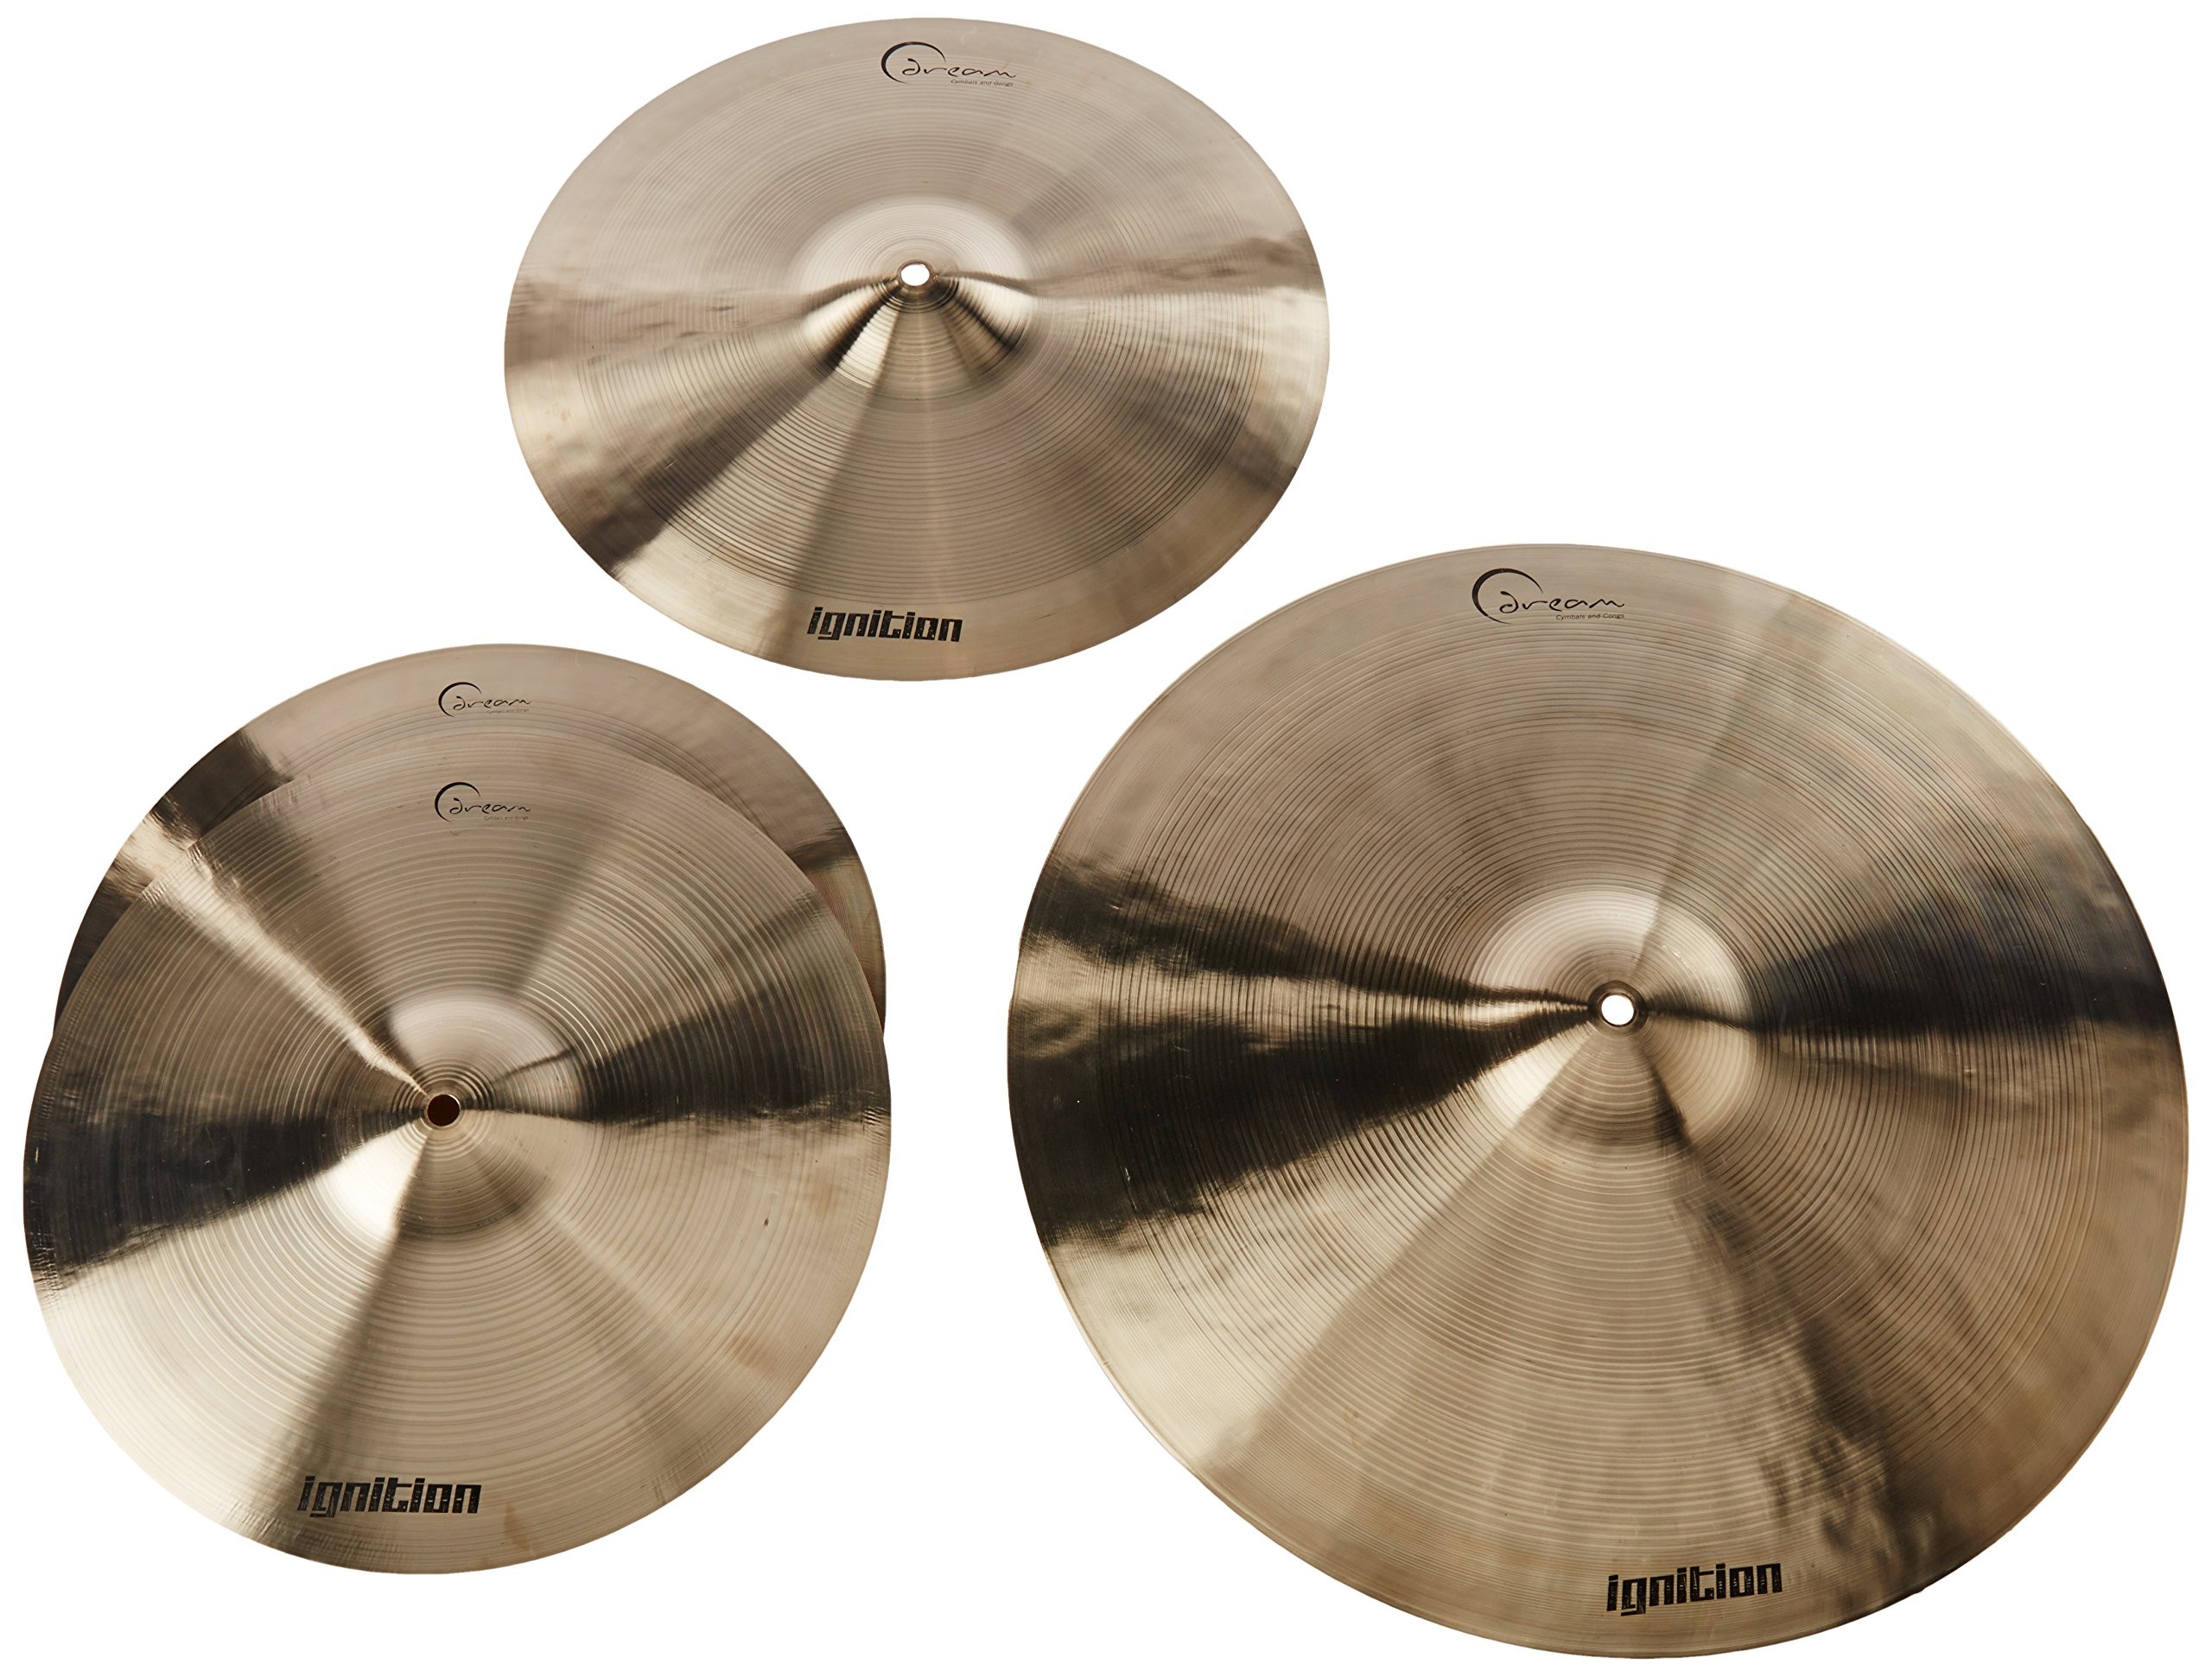 Dream Cymbals IGNCP3 Ignition Cymbal Pack w/ 14'' Hi Hats 16'' Crash 20'' Ride and Gig Bag by Dream Cymbals and Gongs